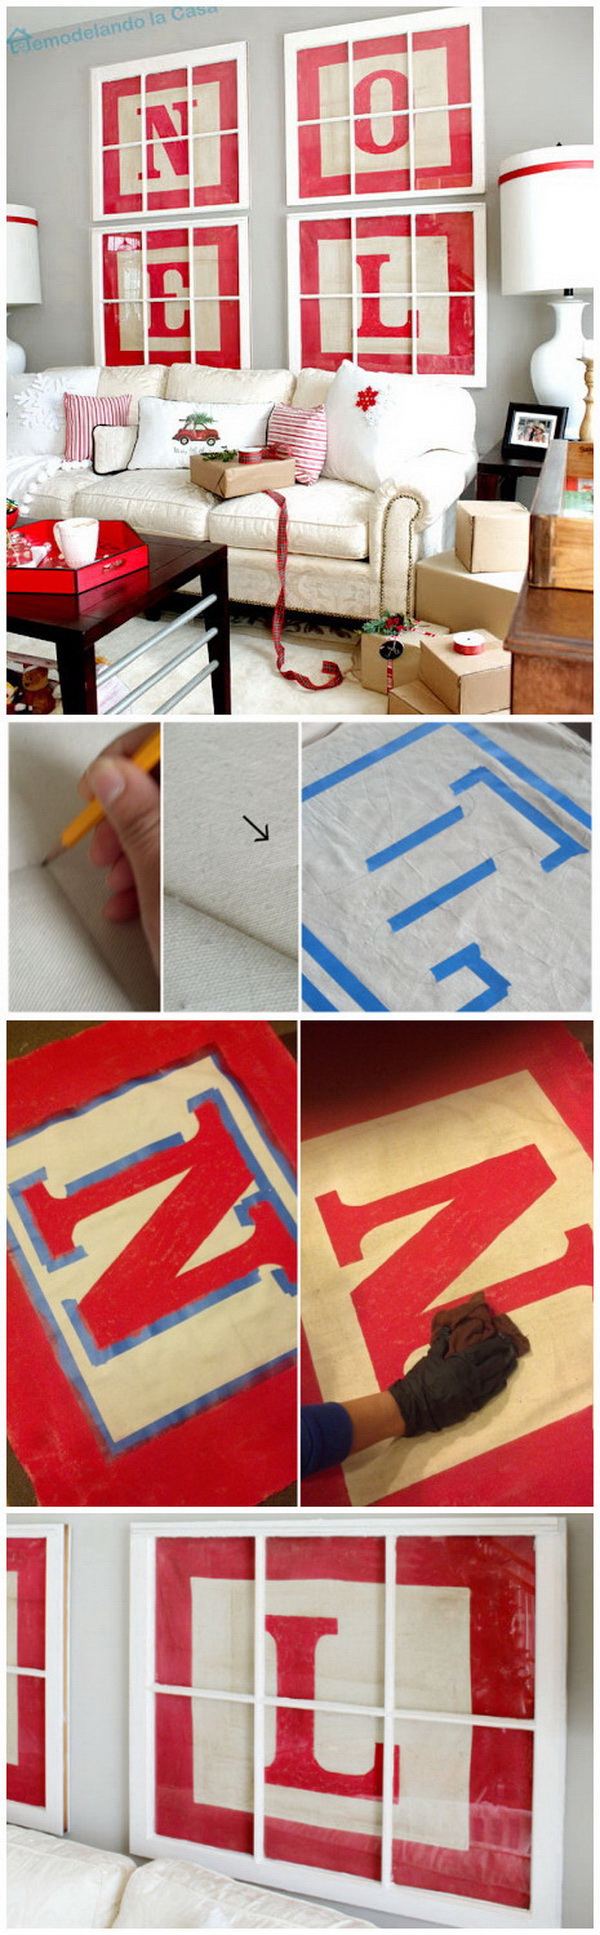 Homemade Projects & Ideas for Christmas Decoration: Alphabet Block Letter Art.